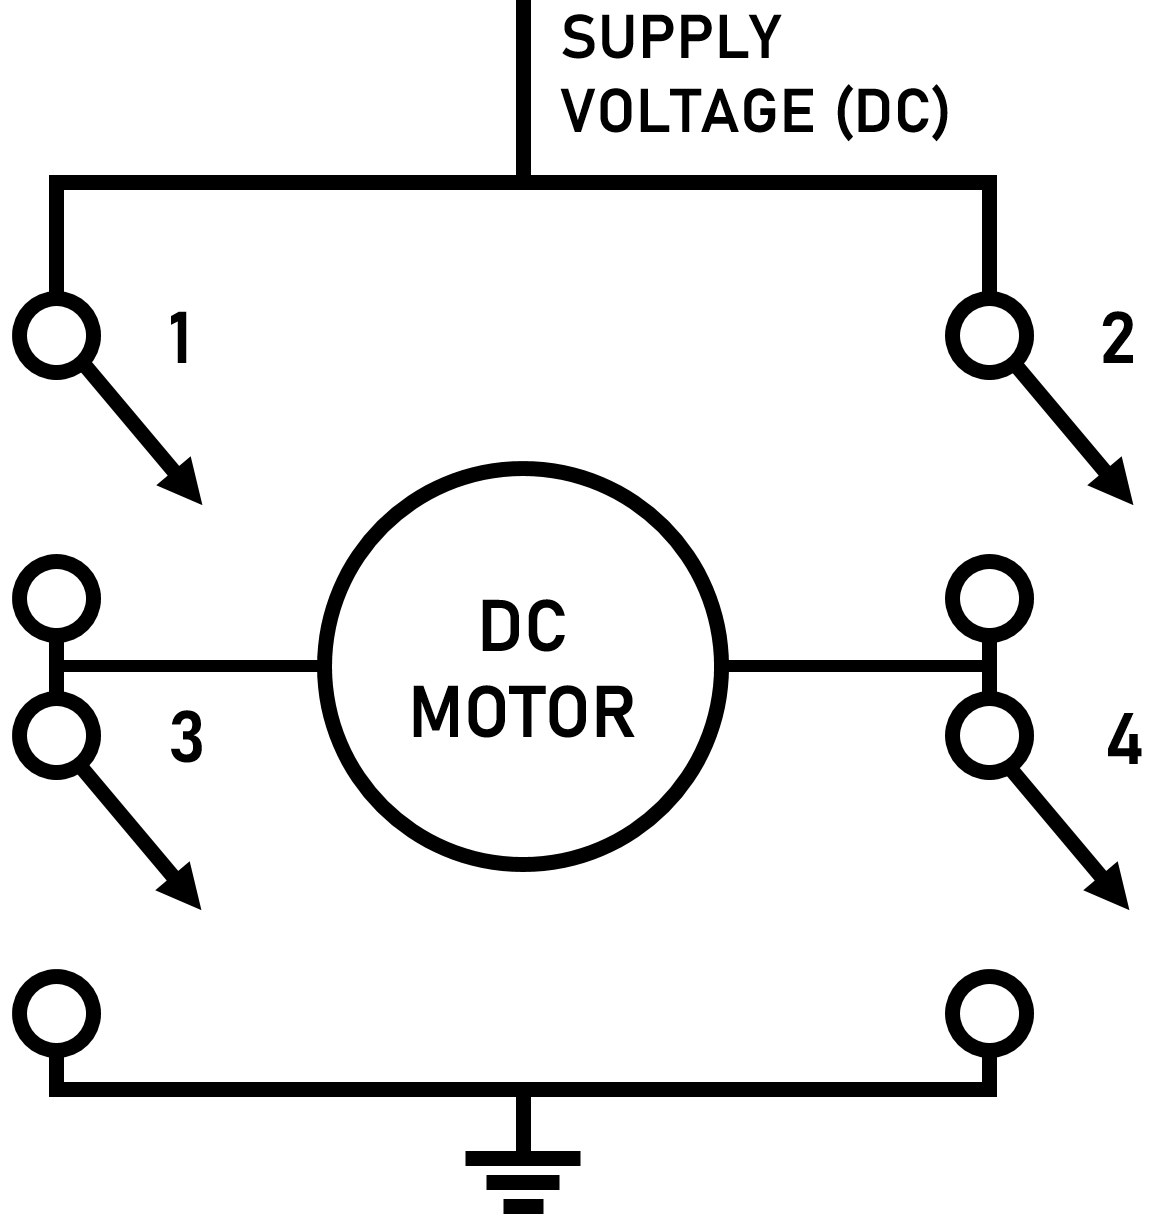 All About DC Motor Controllers - What They Are and How They Work on